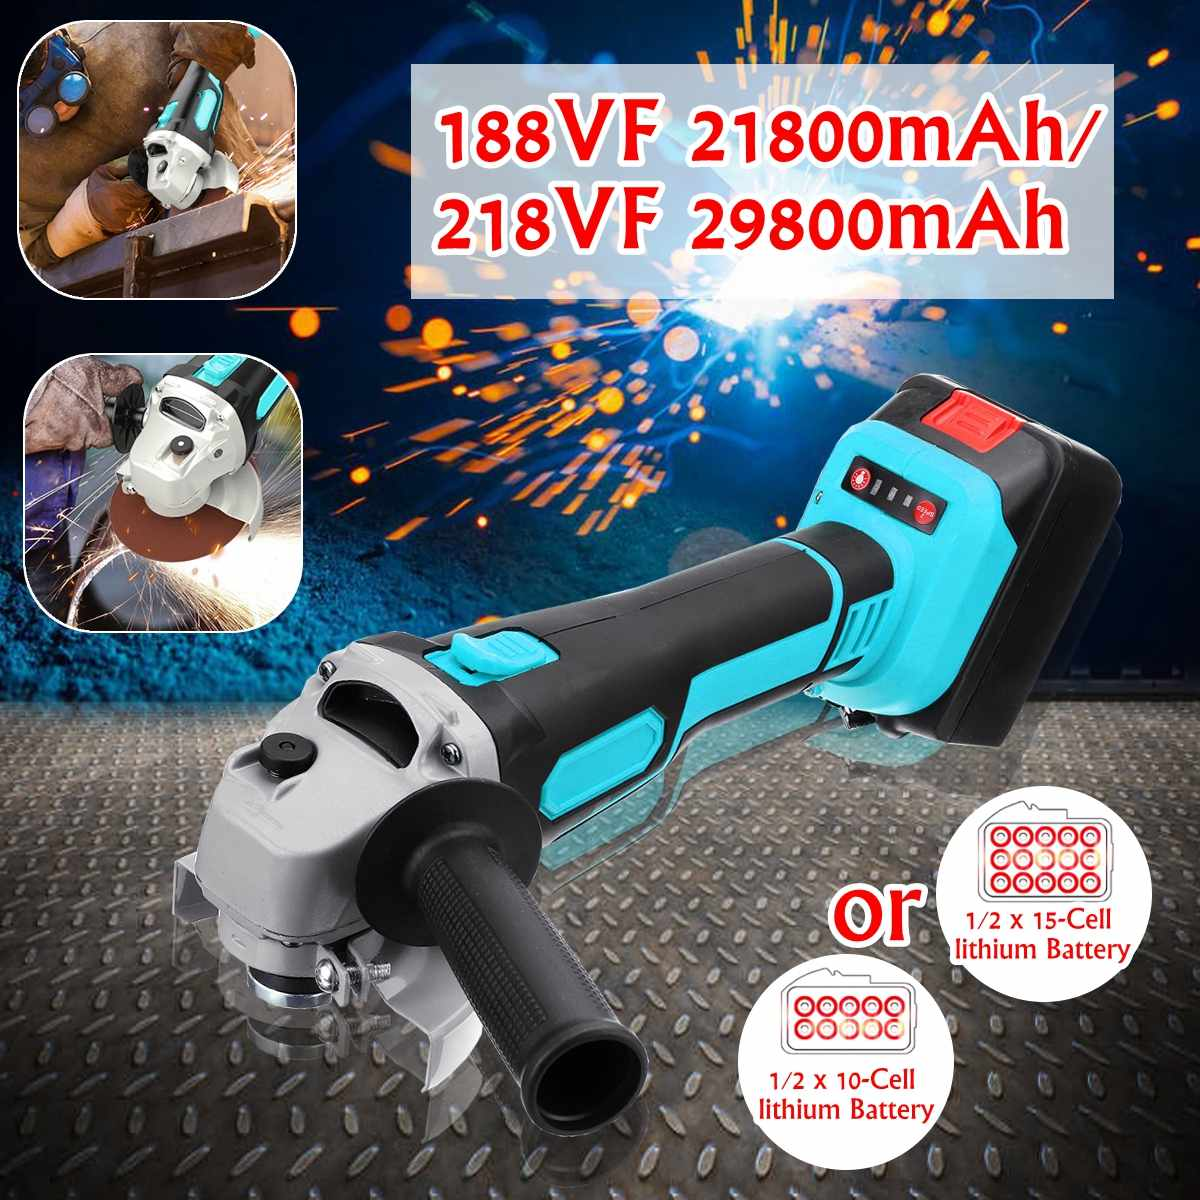 21800mah/29800mah Lithium Battery Electric Angle Grinder Electric Grinding Machine Cordless Polishing Machine Cutting Tool